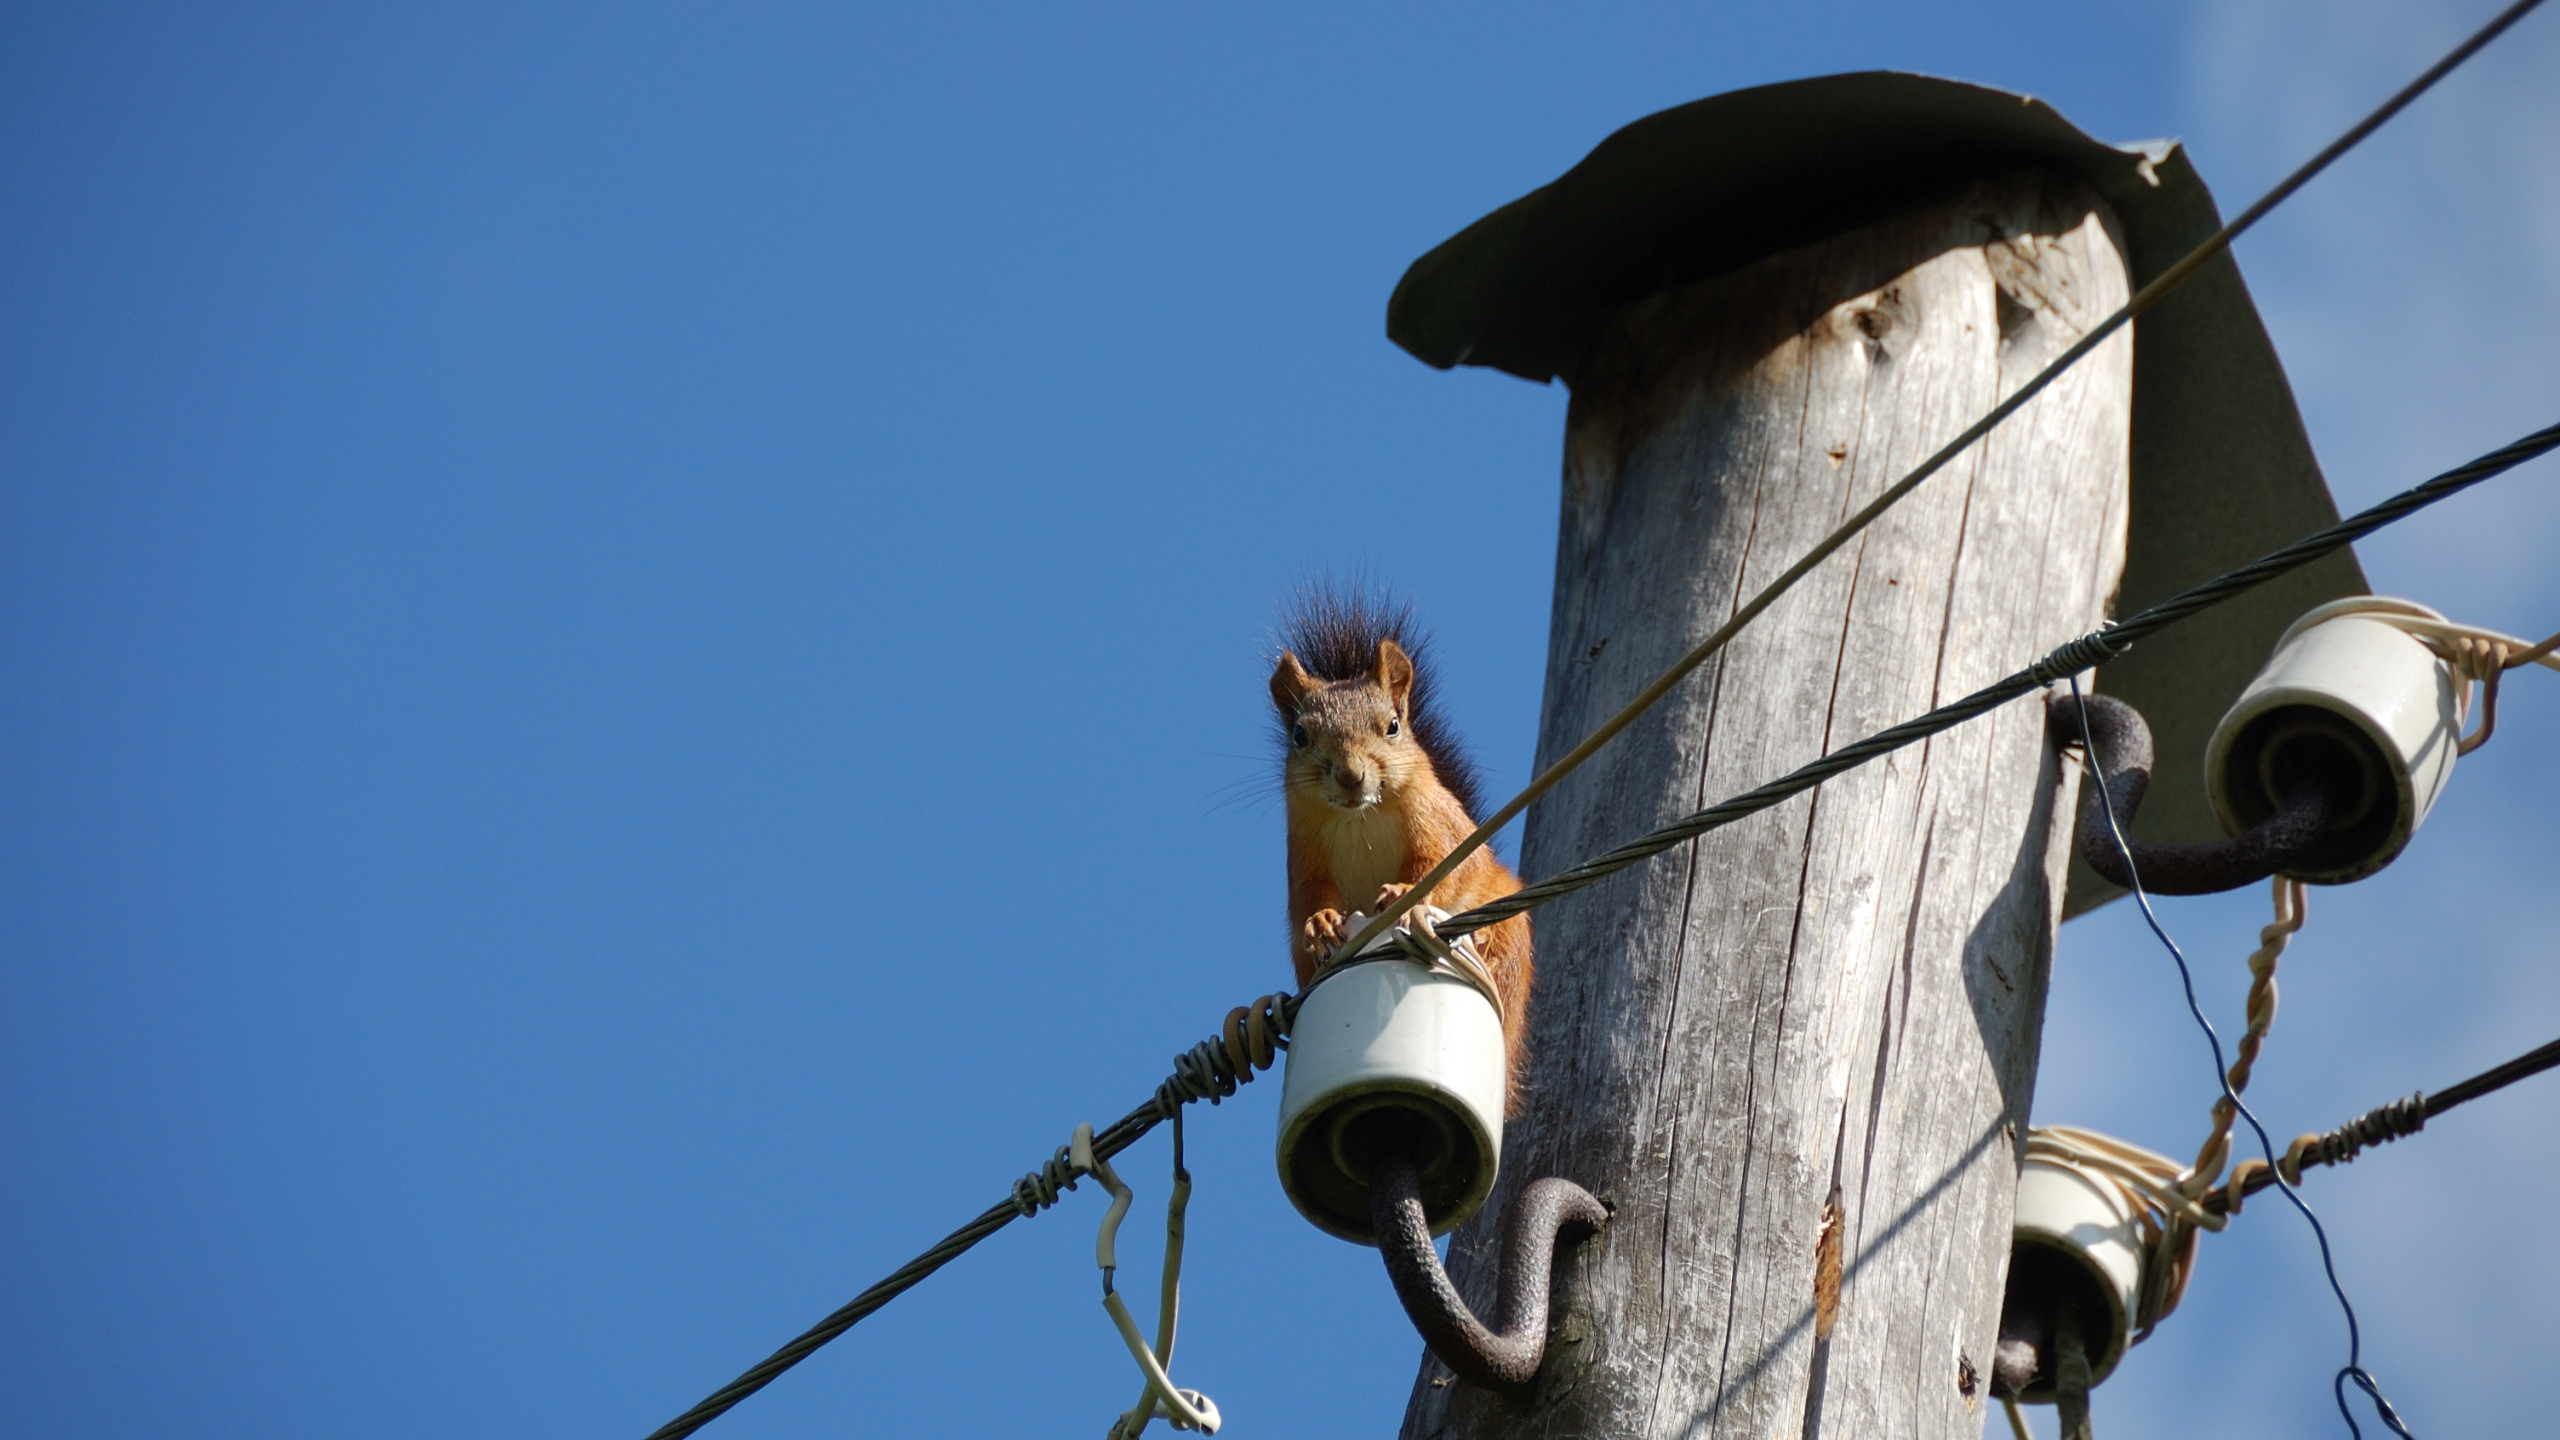 squirrel sitting on dielectric of old electric pole_1553884556532